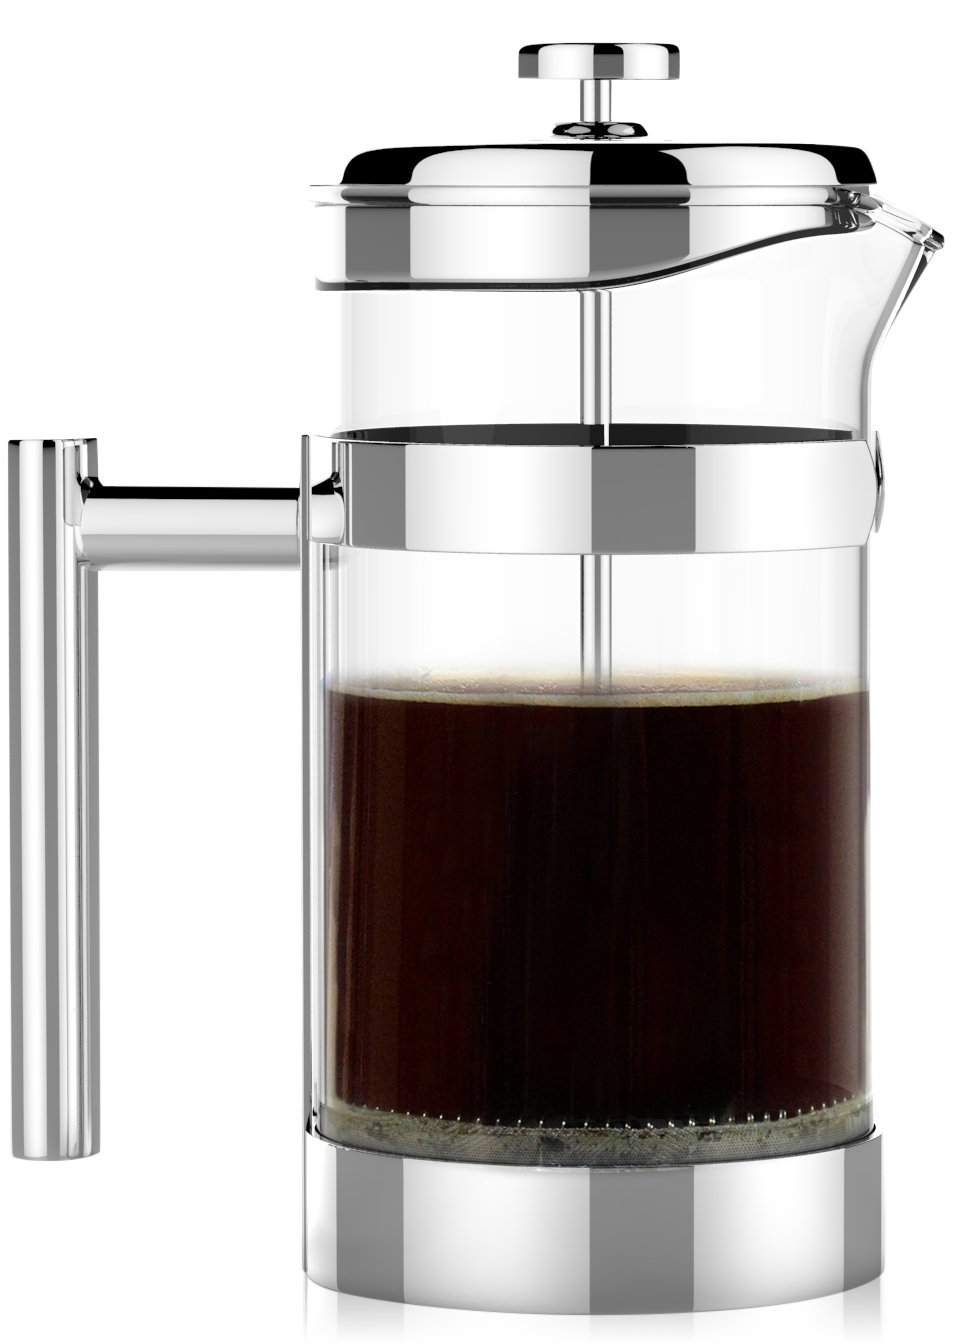 The Original VERO Chambord French Press 34oz (1 Liter) – #1 Best Selling All Stainless Steel and Glass French Press - Sovrano International Coffee and Tea Press – 100% Plastic Free